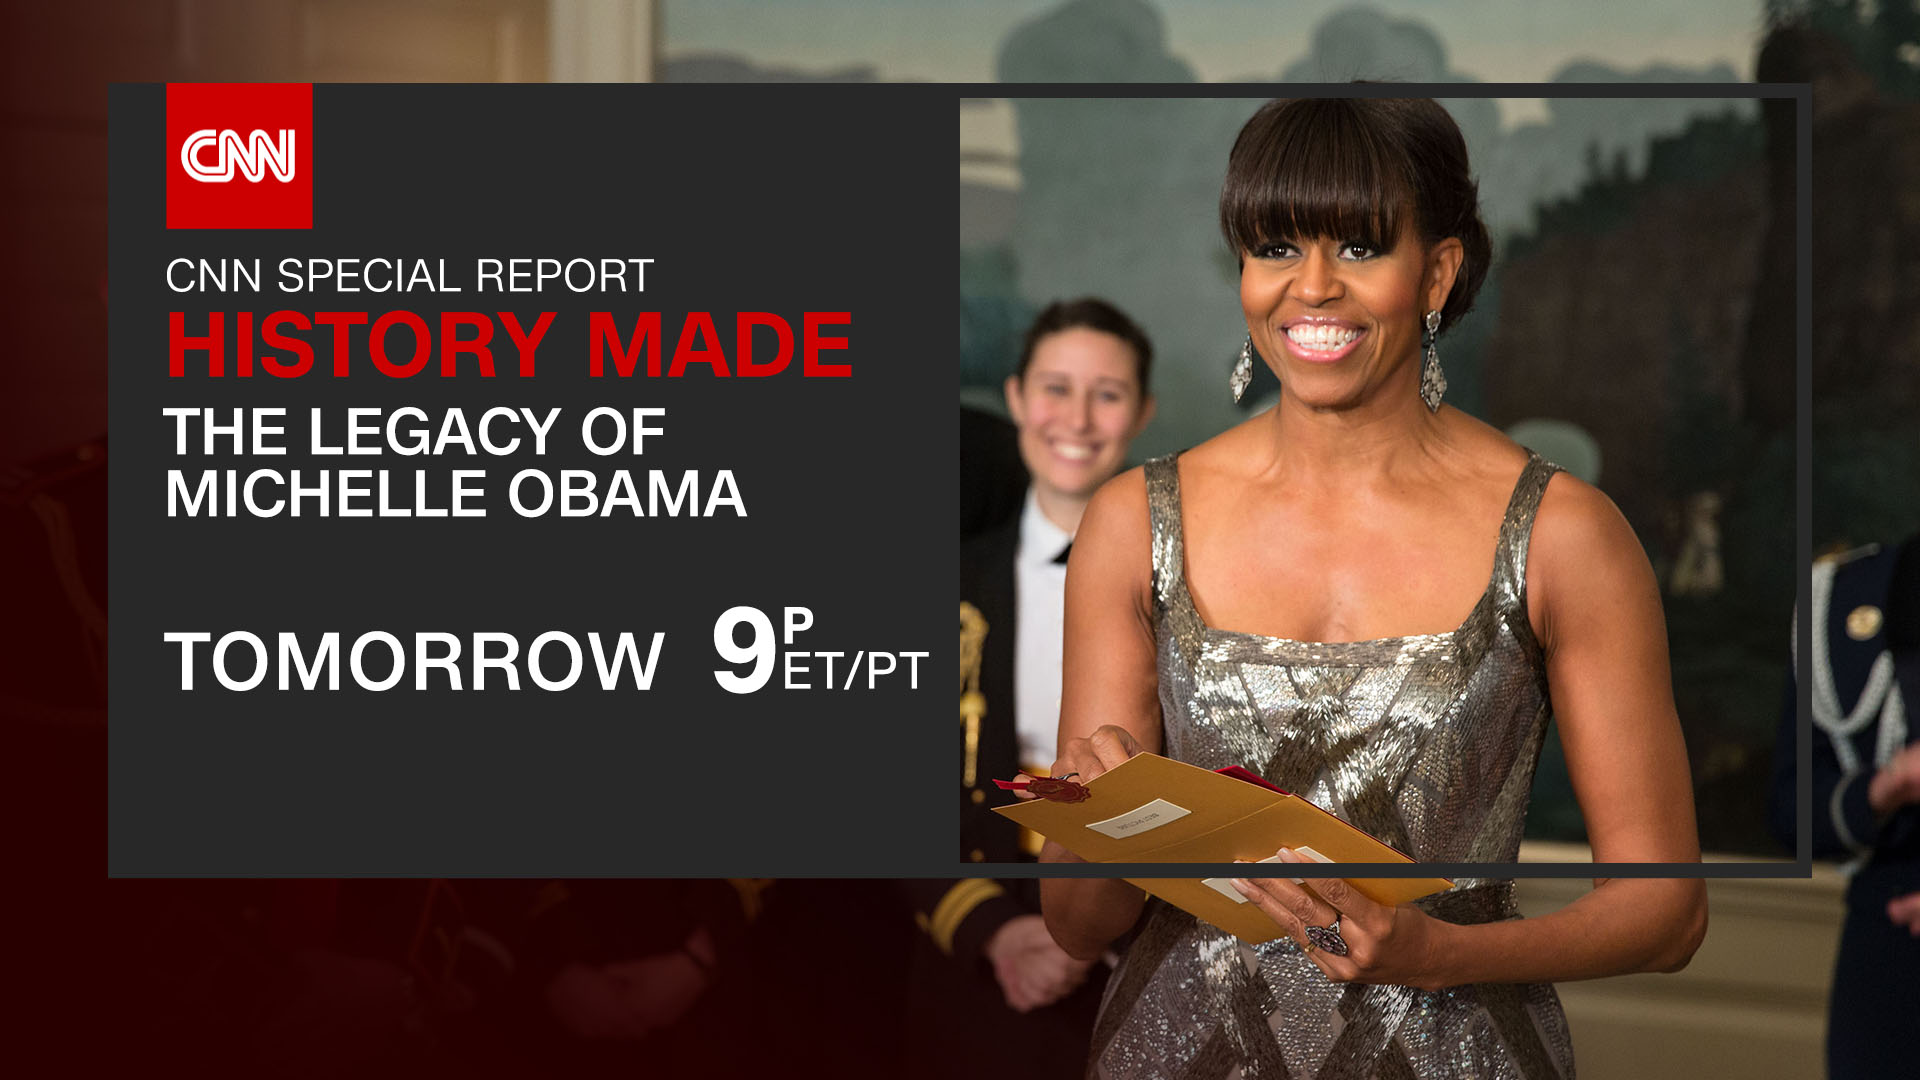 'HISTORY MADE: THE LEGACY OF MICHELLE OBAMA' TO AIR JANUARY 13TH AT 9PMET